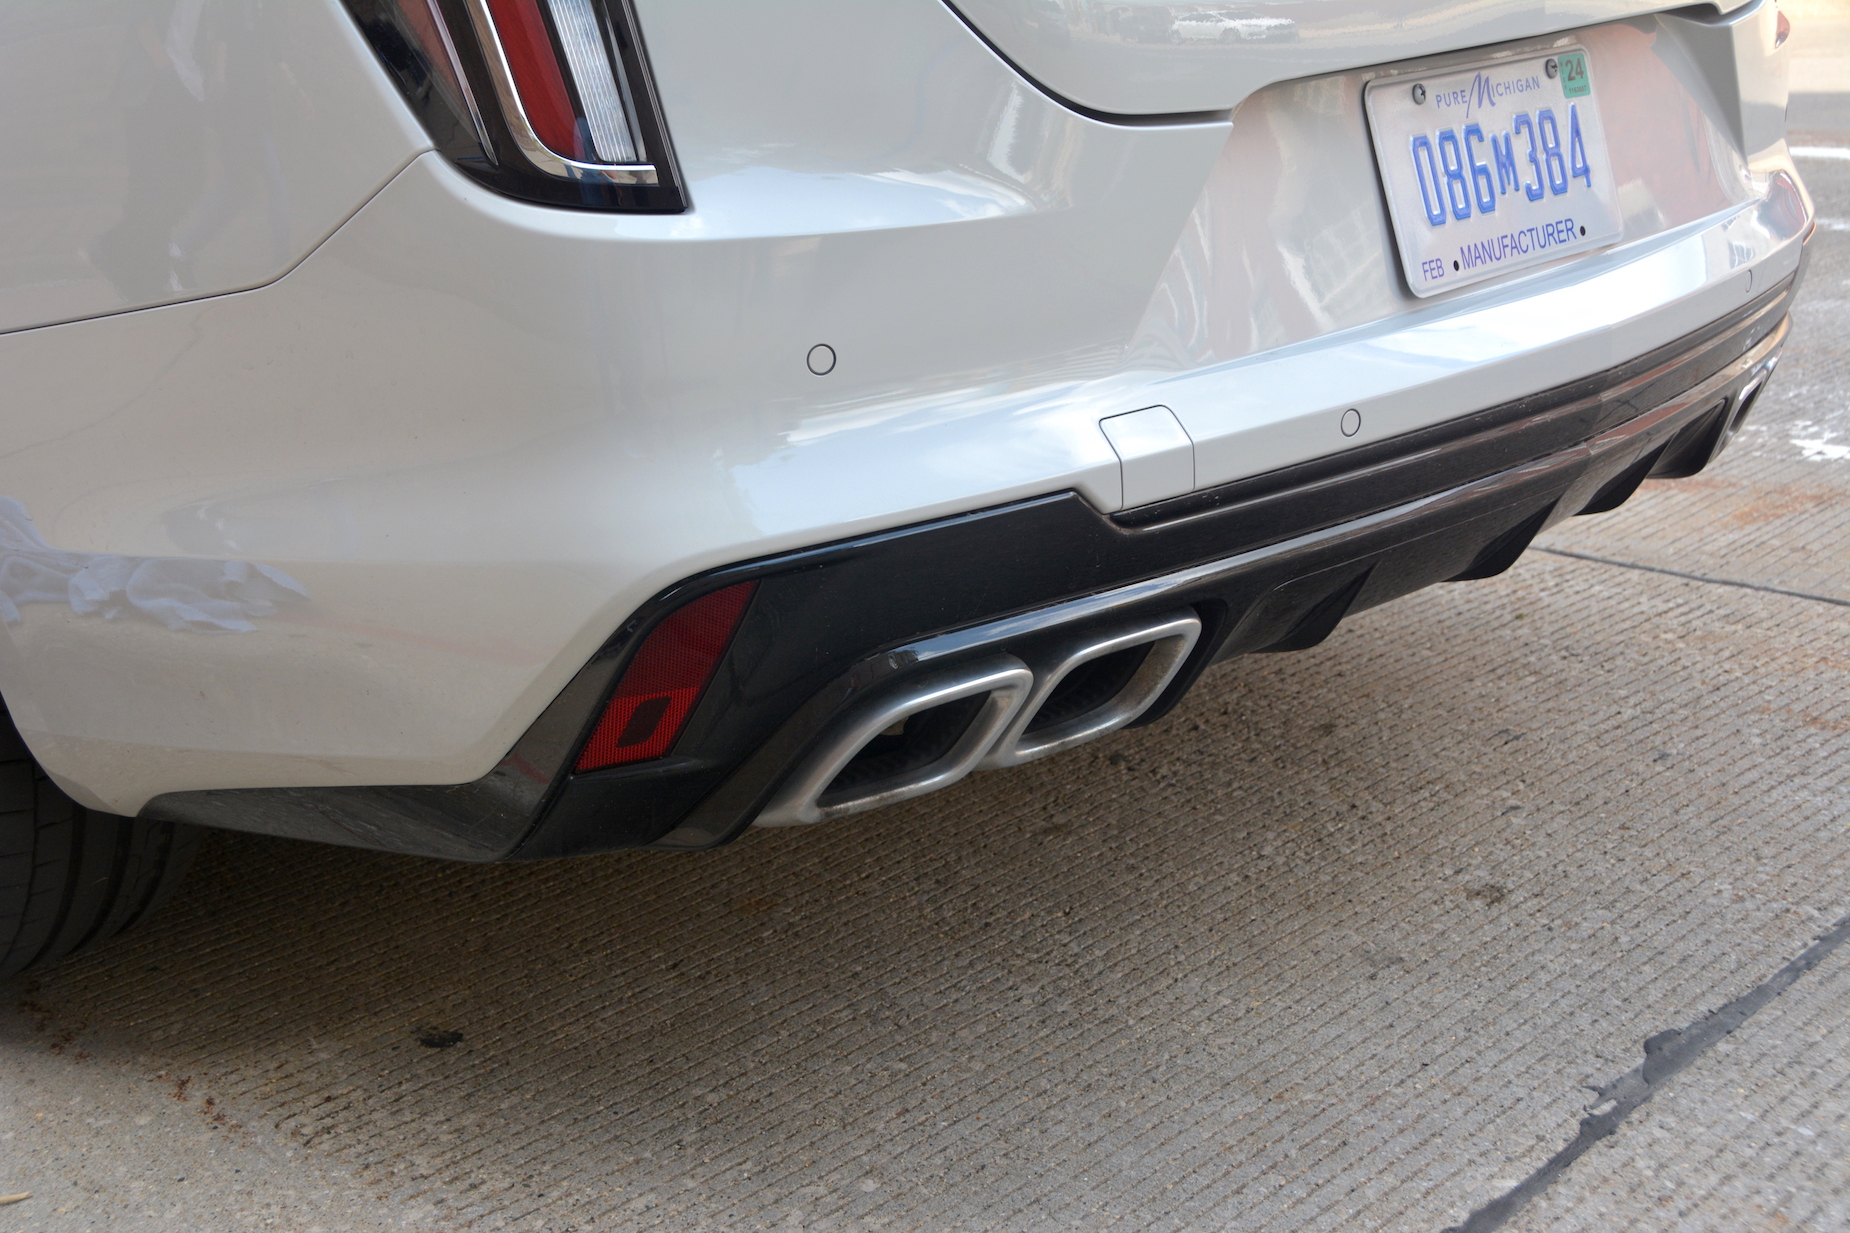 2021 Cadillac CT4-V exhaust tips